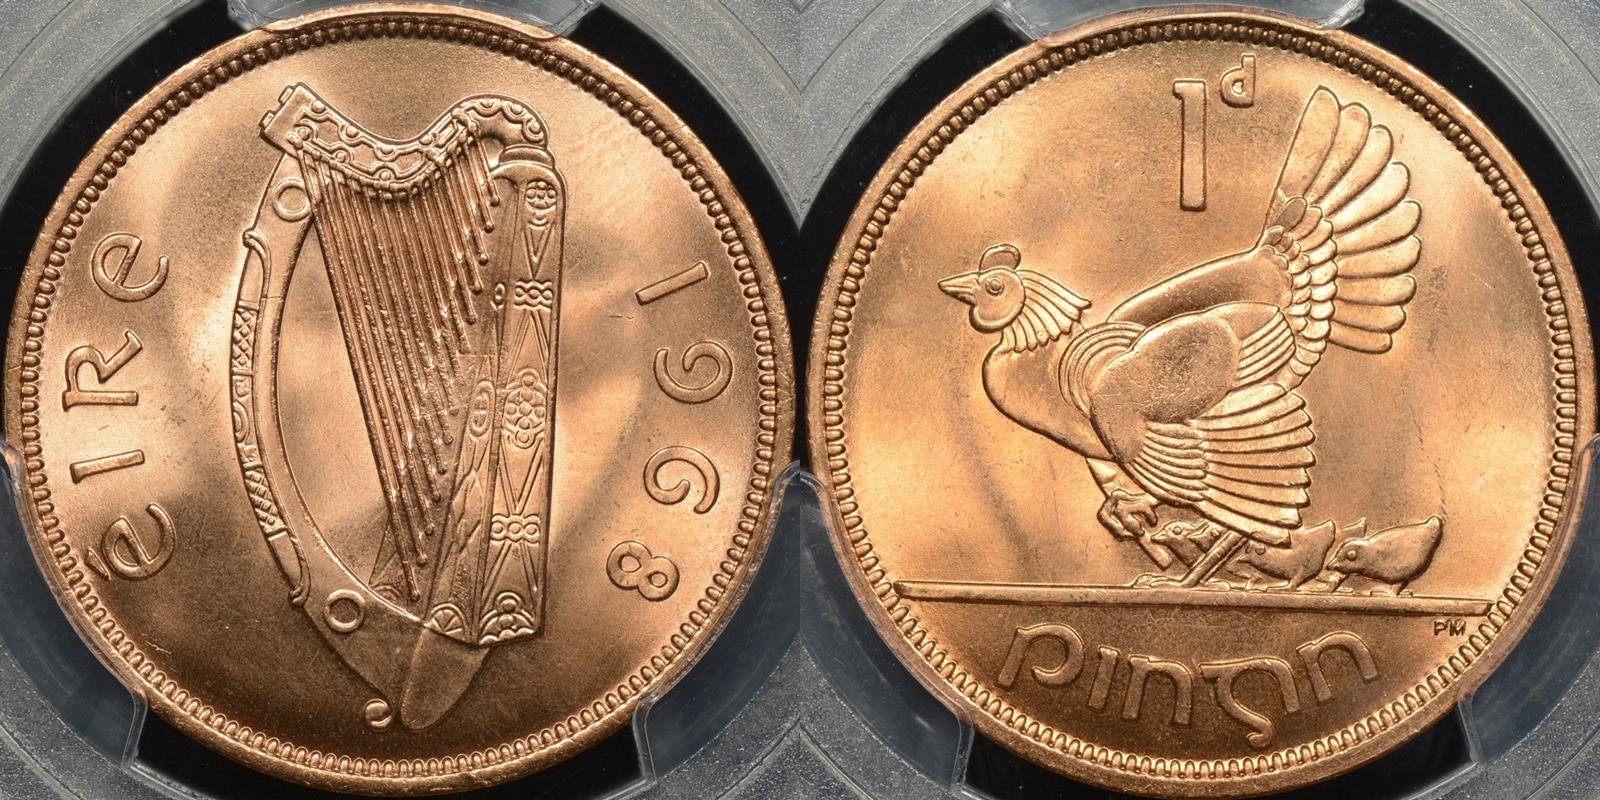 Ireland 1968 penny km 11 GEM Uncirculated PCGS MS66rd red